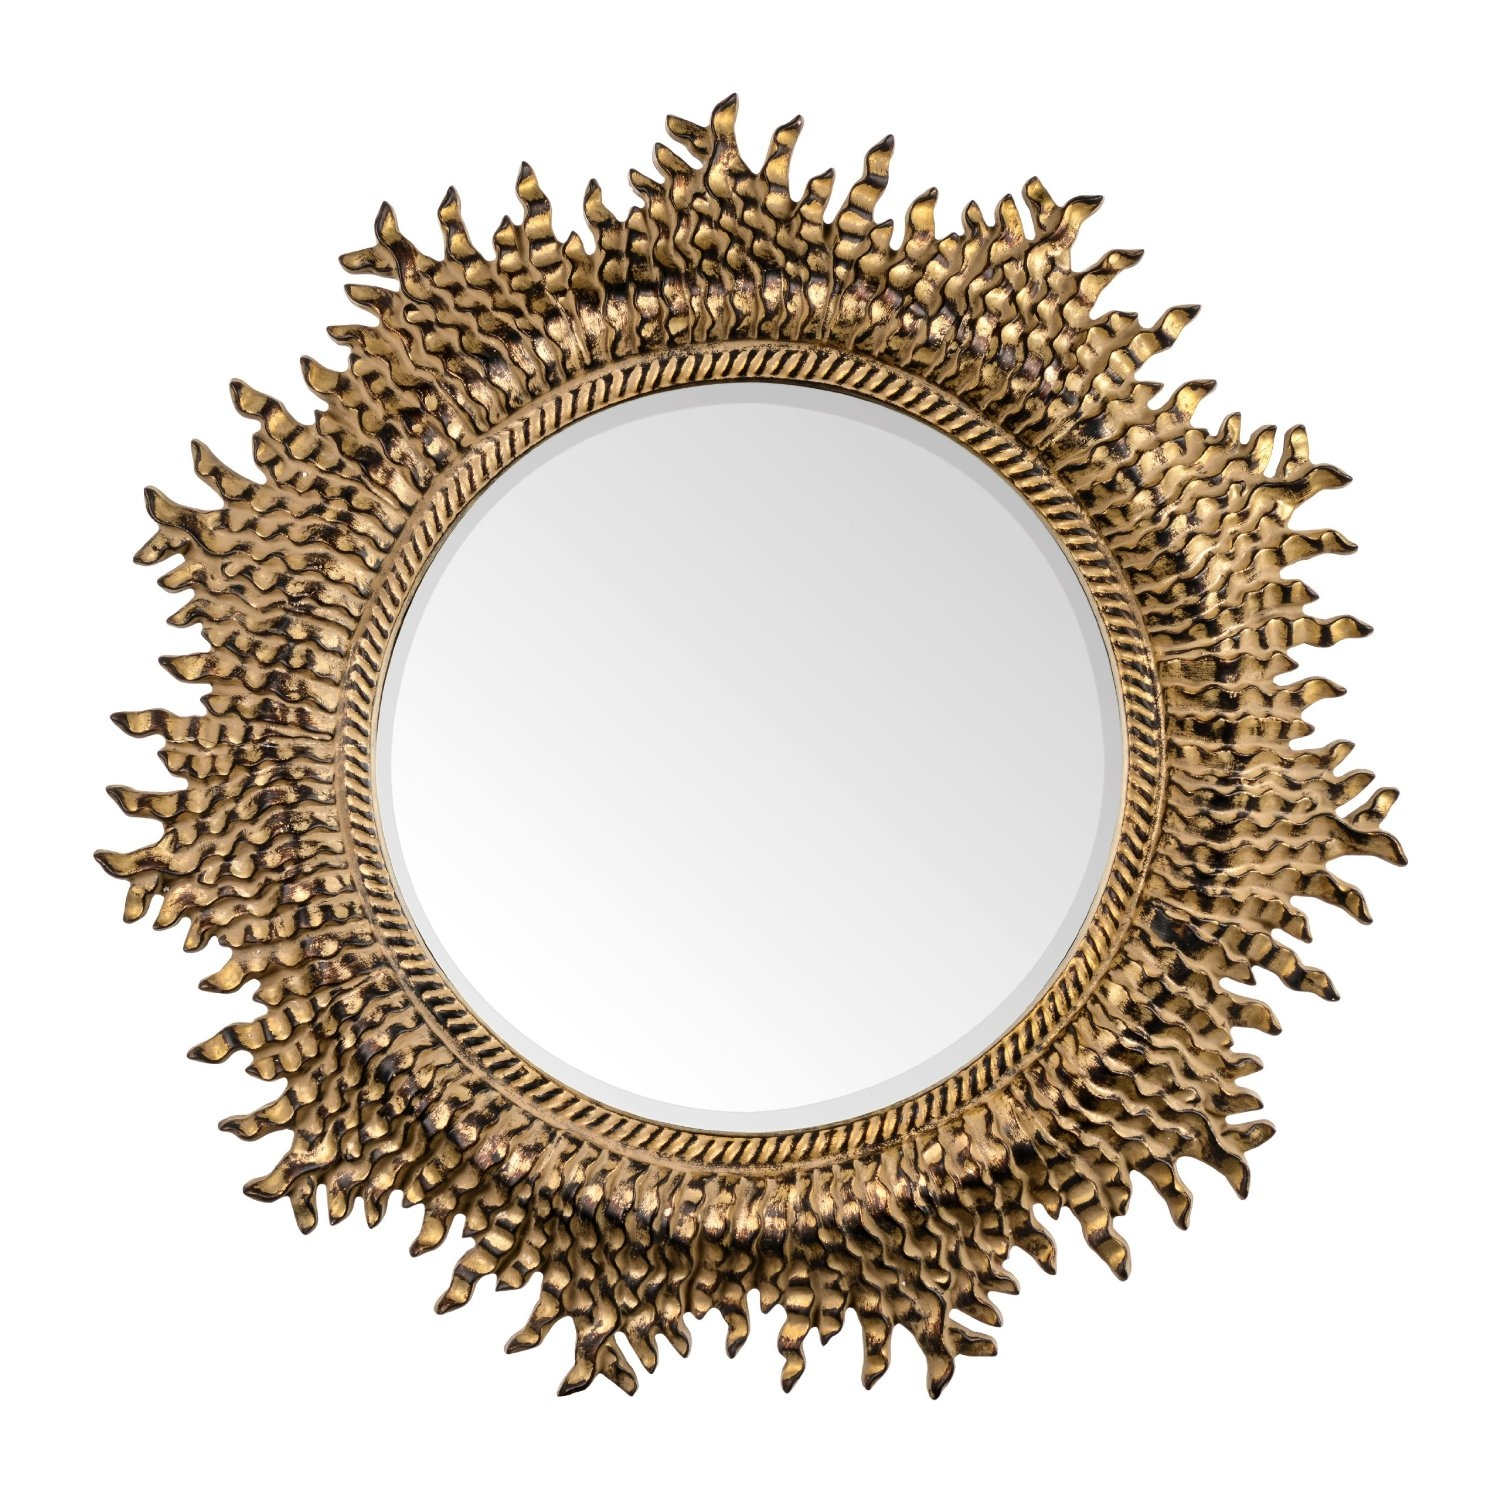 16 Ornate Mirrors For Your Home Qosy Inside Ornate Gold Mirror (View 14 of 15)